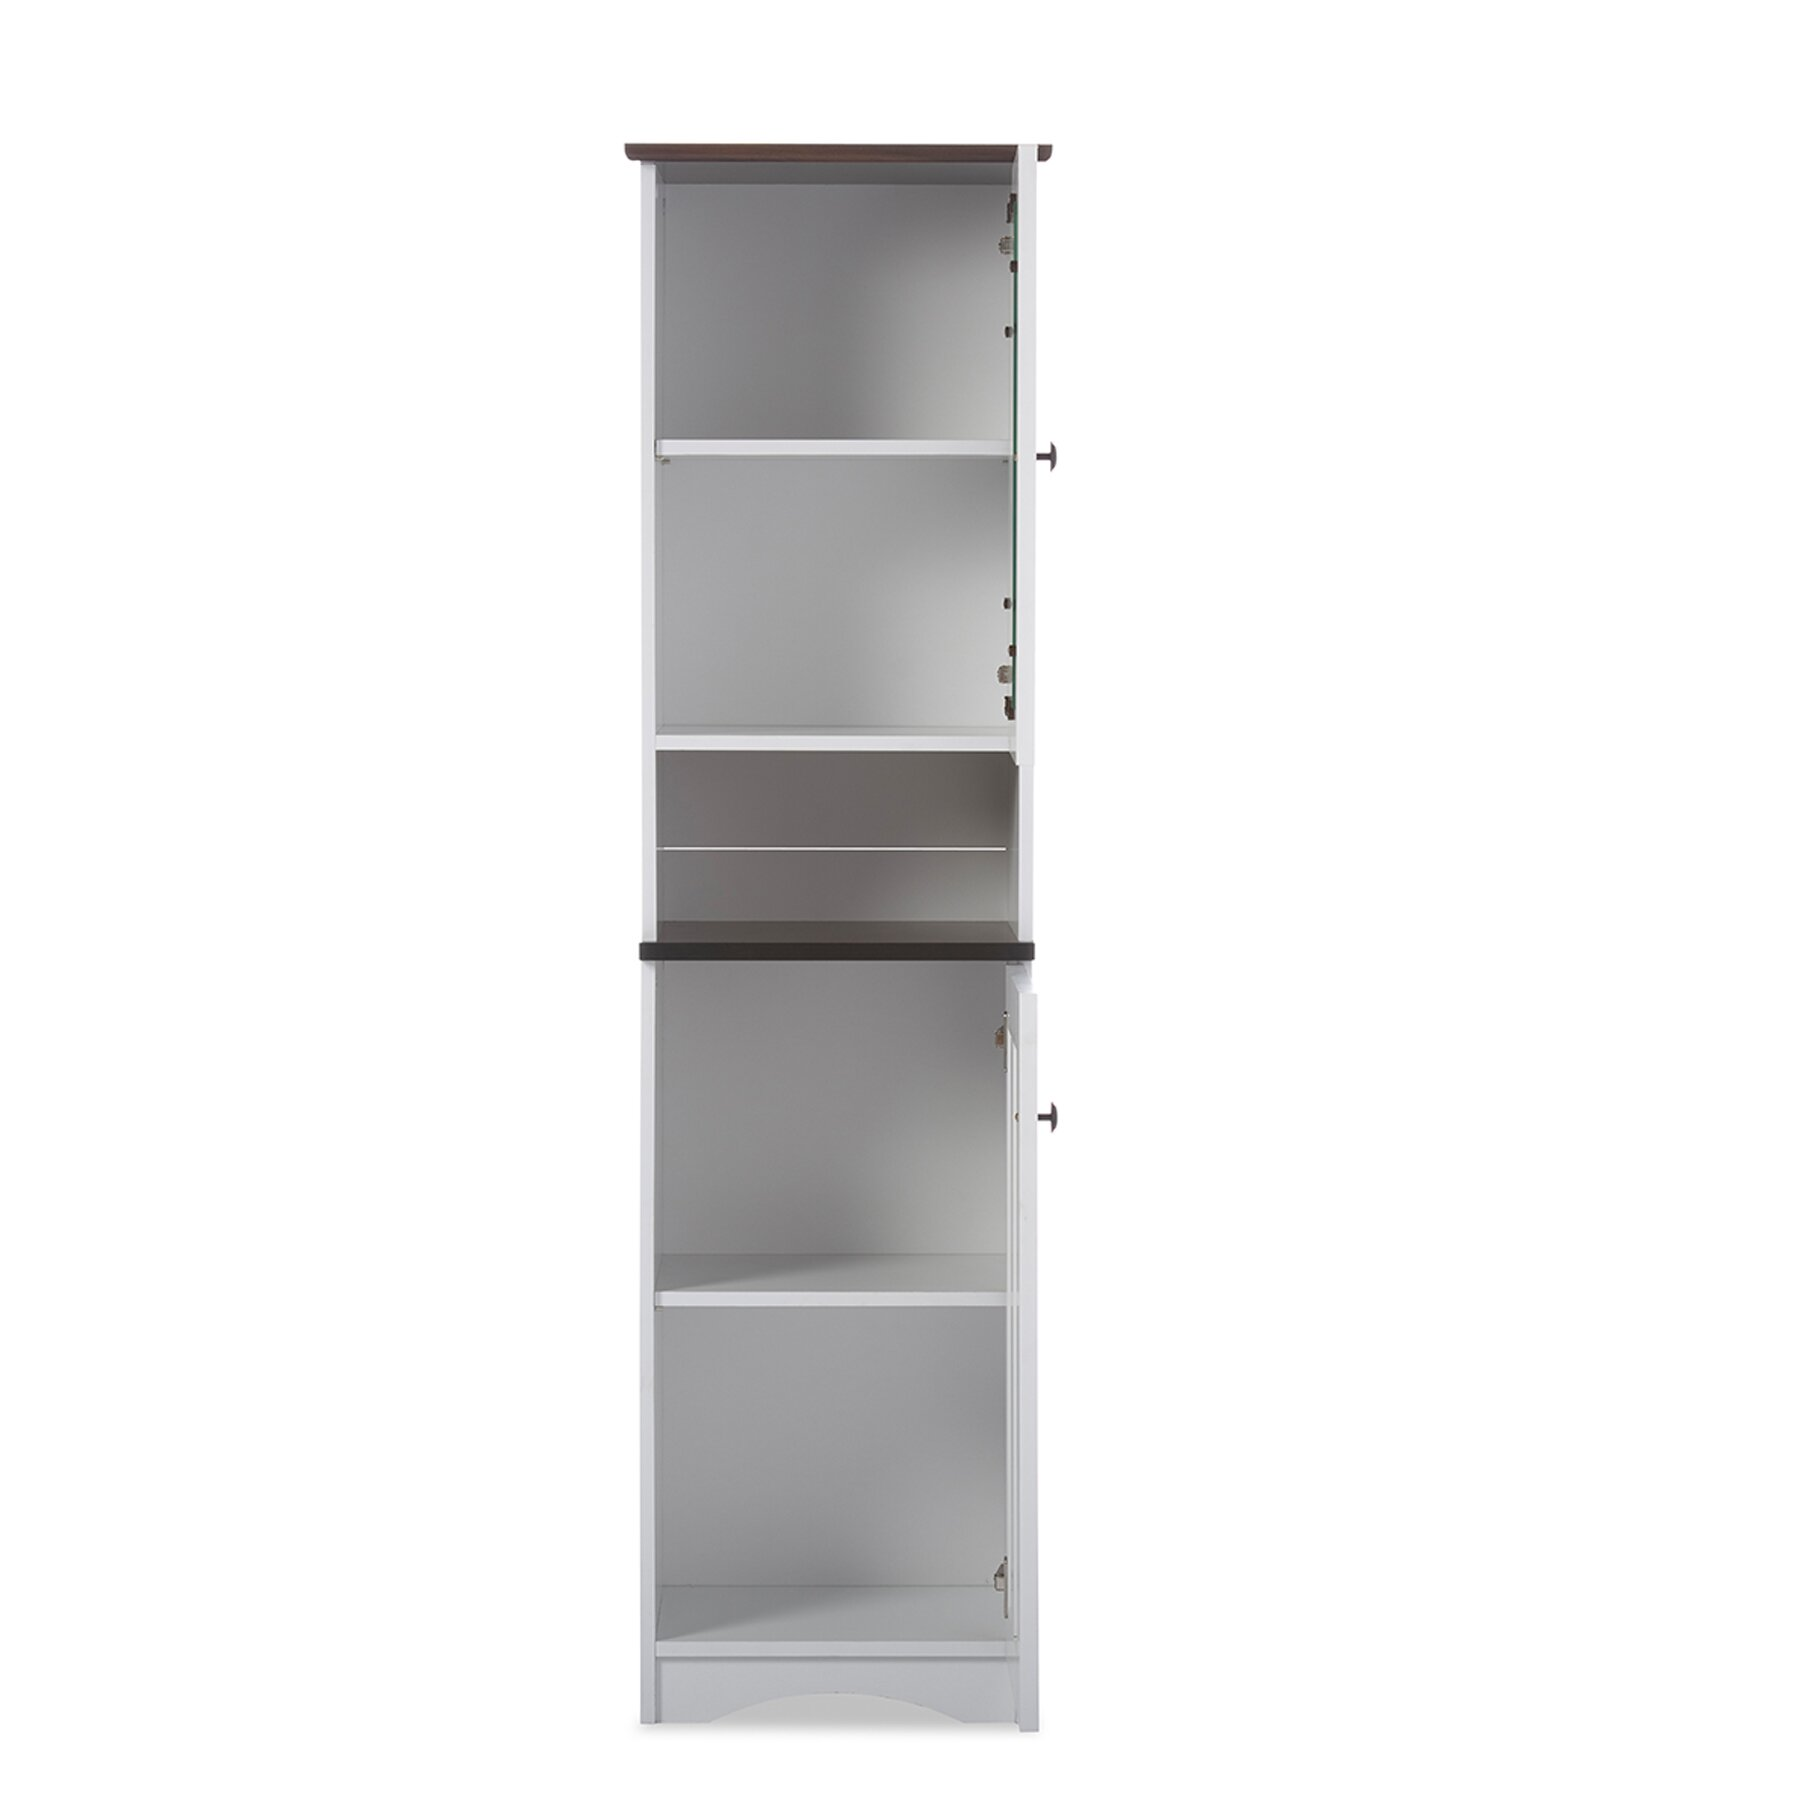 Wholesale interiors baxton studio china cabinet reviews for Chinese kitchen cabinets wholesale